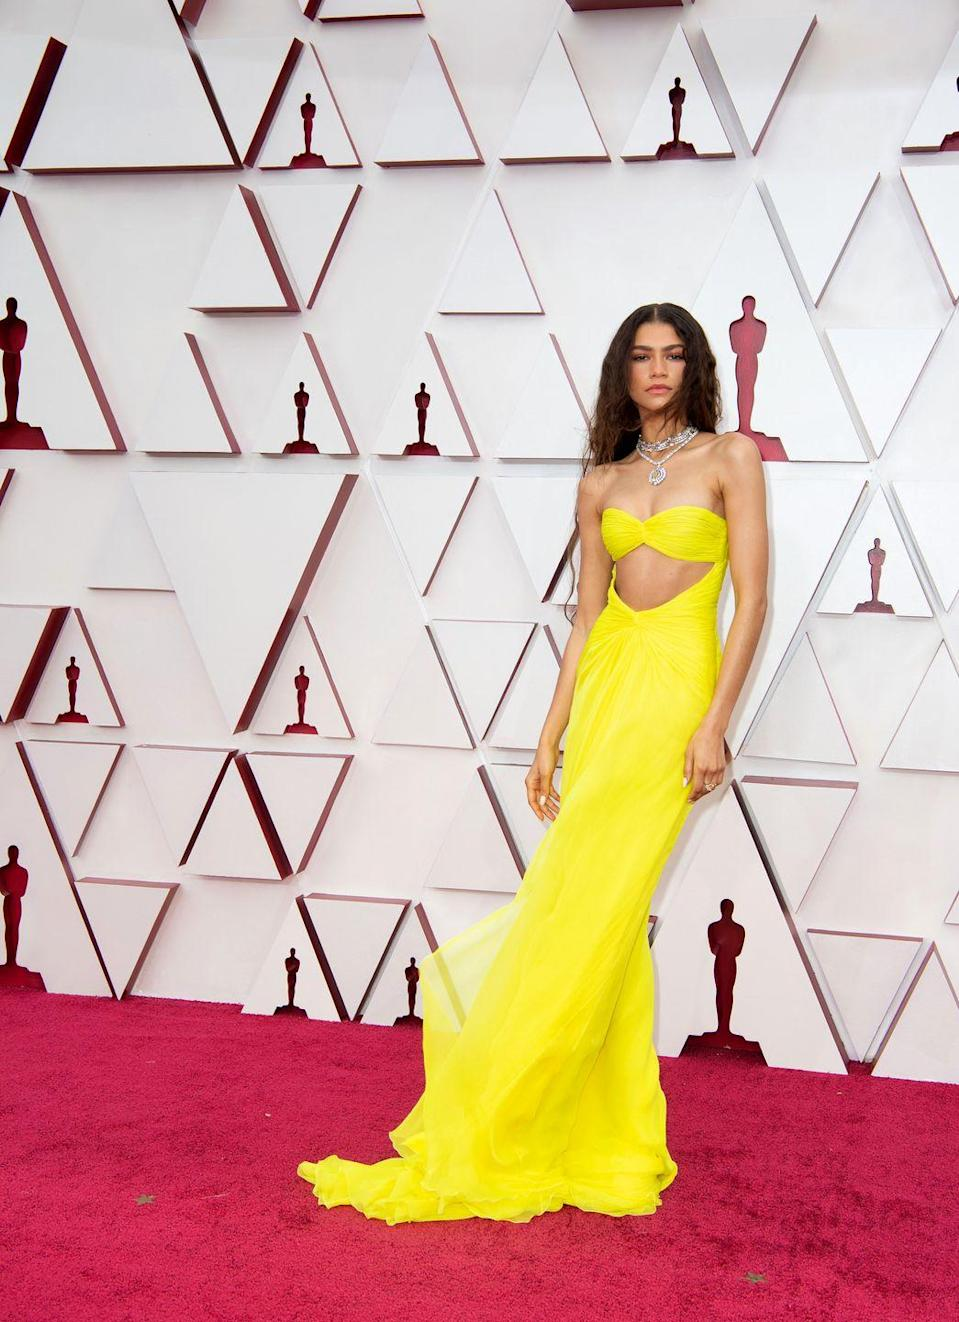 <p>Another star whose Valentino dress might just go down as one of the favourites in Oscars history was Zendaya. The star and her stylist Law Roach chose a bright yellow gown from Pier Paolo Piccioli's most recent couture collection, which also features a cut-out panel but more of a slinky silhouette than Mulligan's voluminous gown. The star also did not hold back on the bling, wearing a series of statement necklaces by Bulgari.</p>